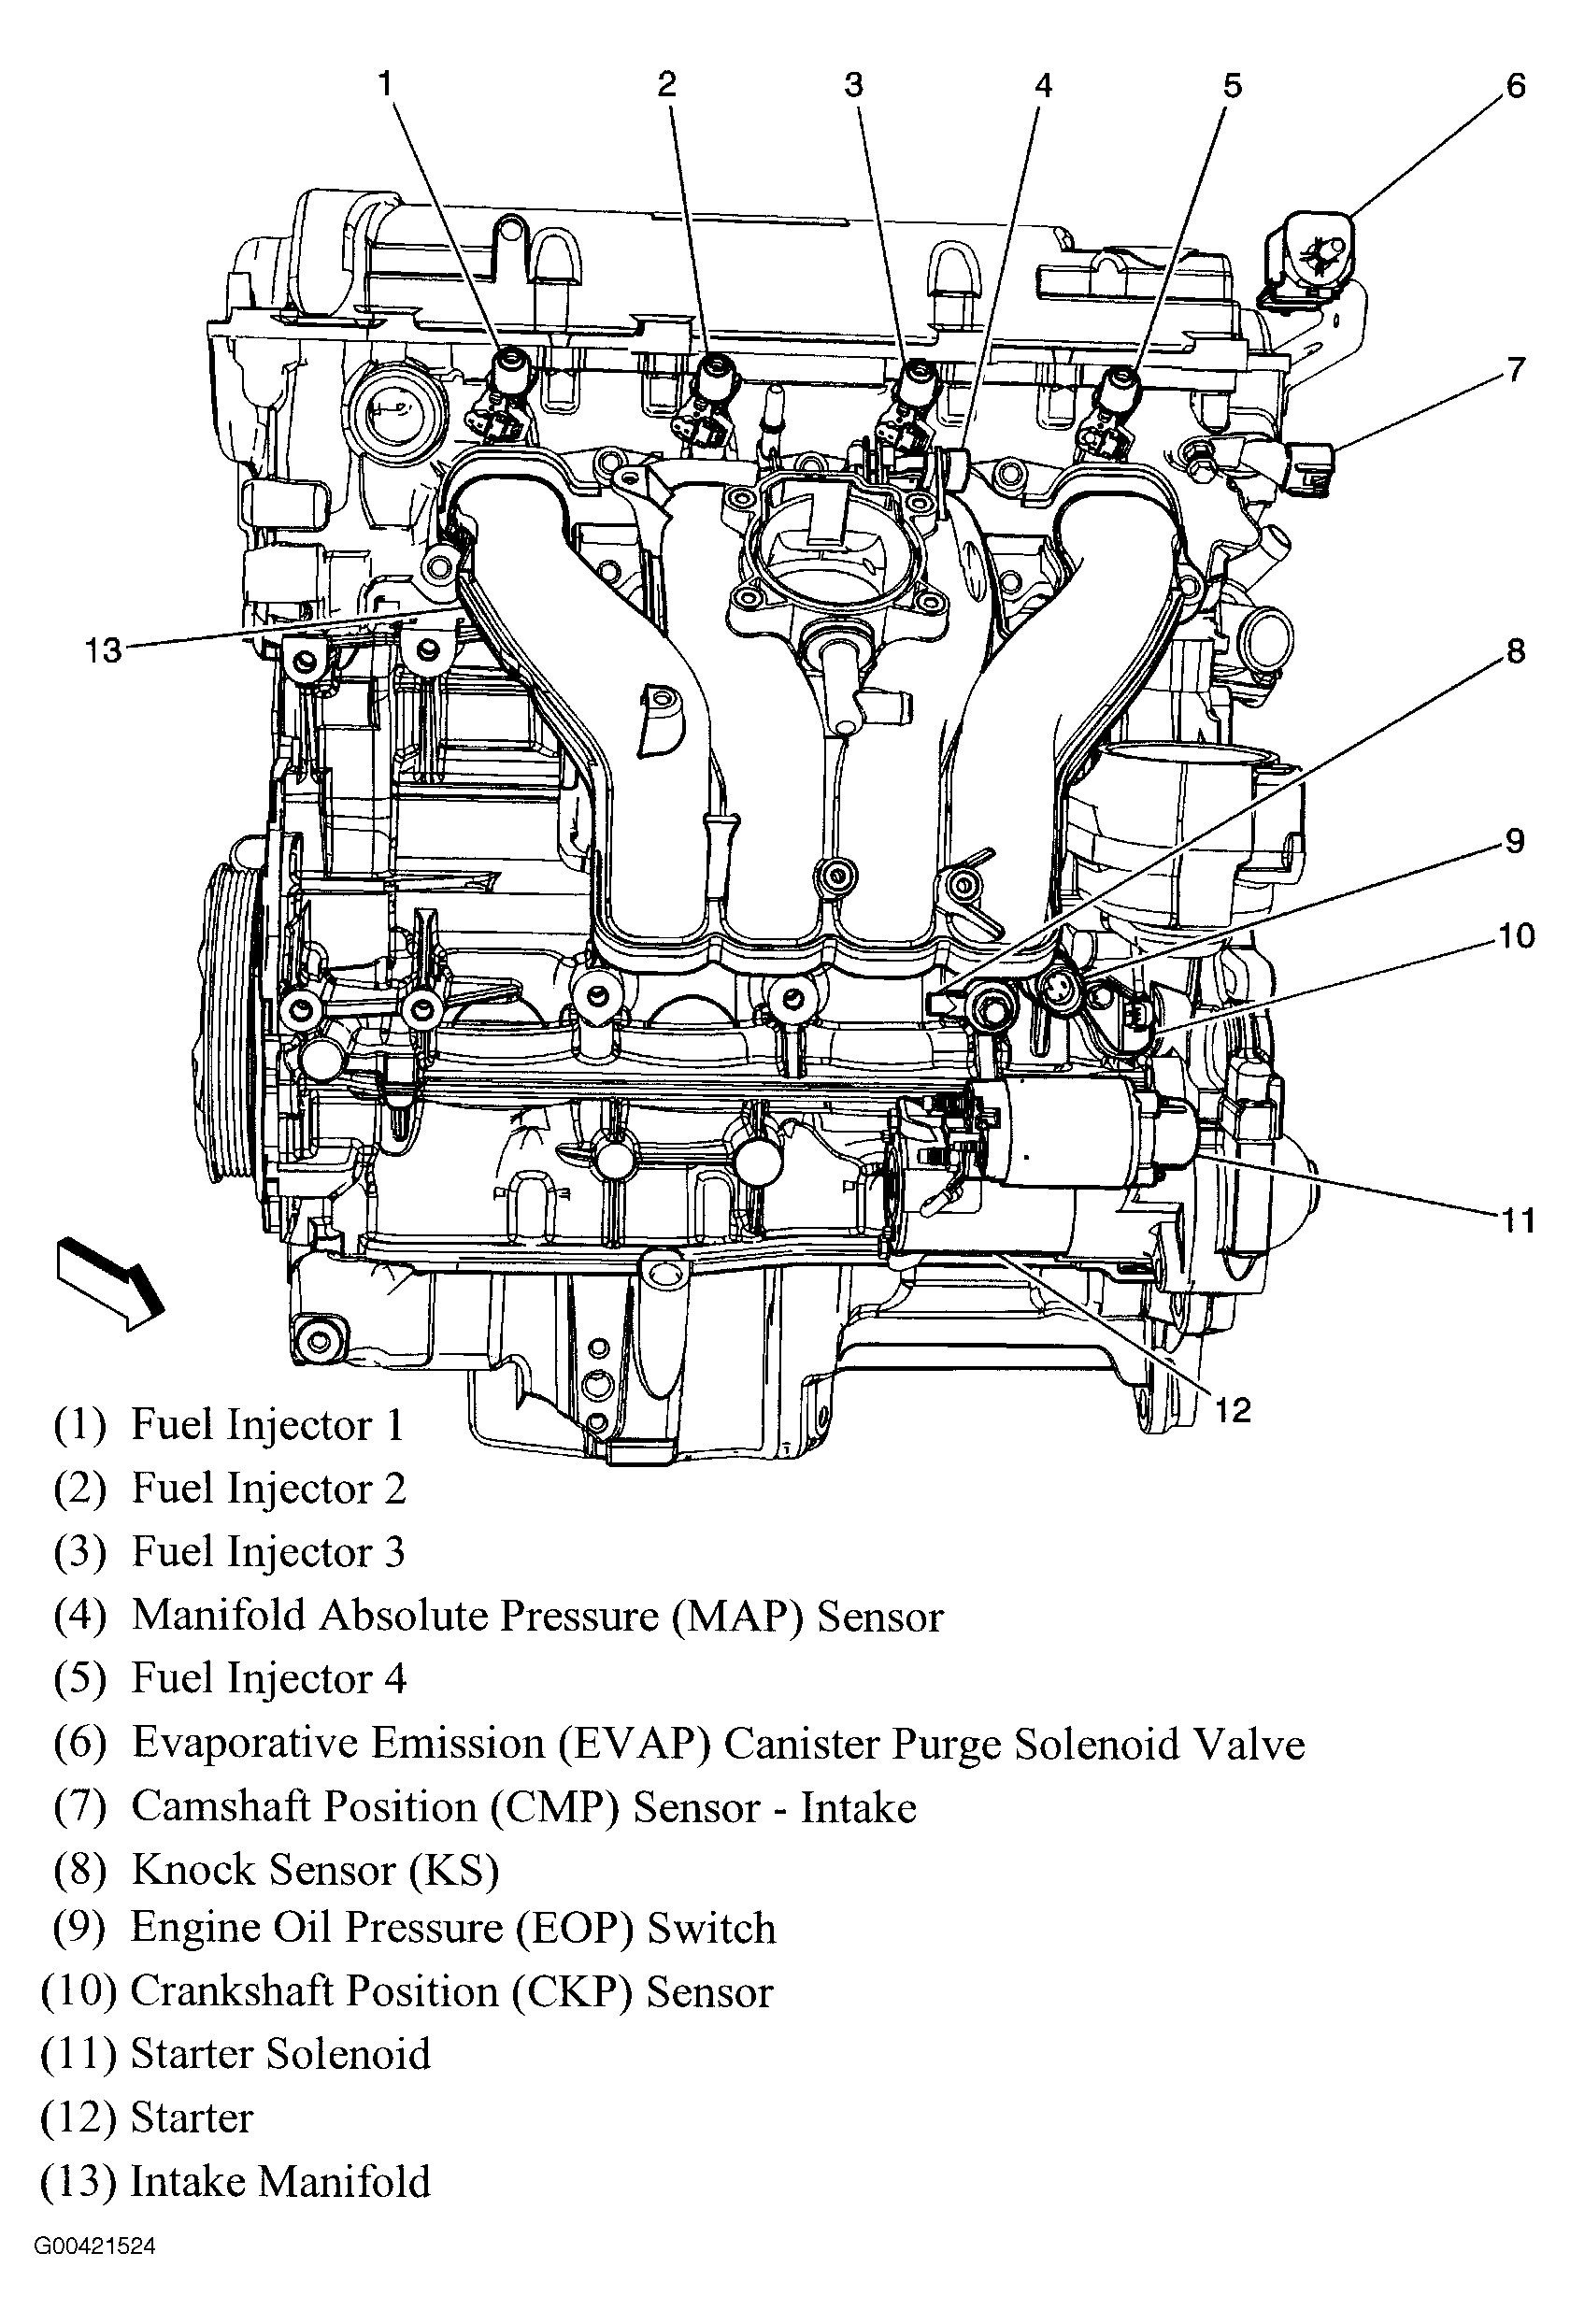 Ecotec 2 2 Engine Diagram 2 2 Ecotec Engine Diagram 2006 Chevy Hhr 2 2 Ecotec Chevy Hhr Of Ecotec 2 2 Engine Diagram